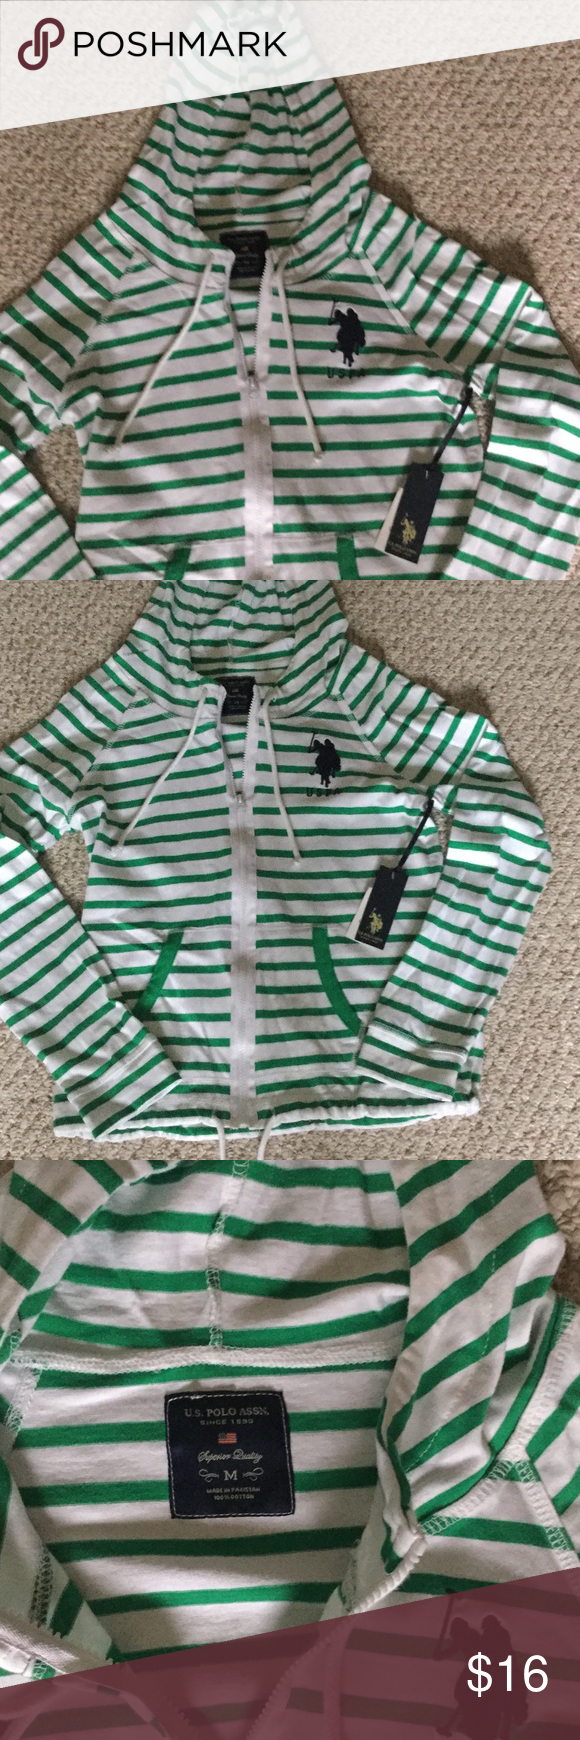 US Polo Assn zip top. US Polo hooded zipper light weight jacket.  White and green stripes.  Tie hood and bottom.  2 pockets. us polo Tops Sweatshirts & Hoodies